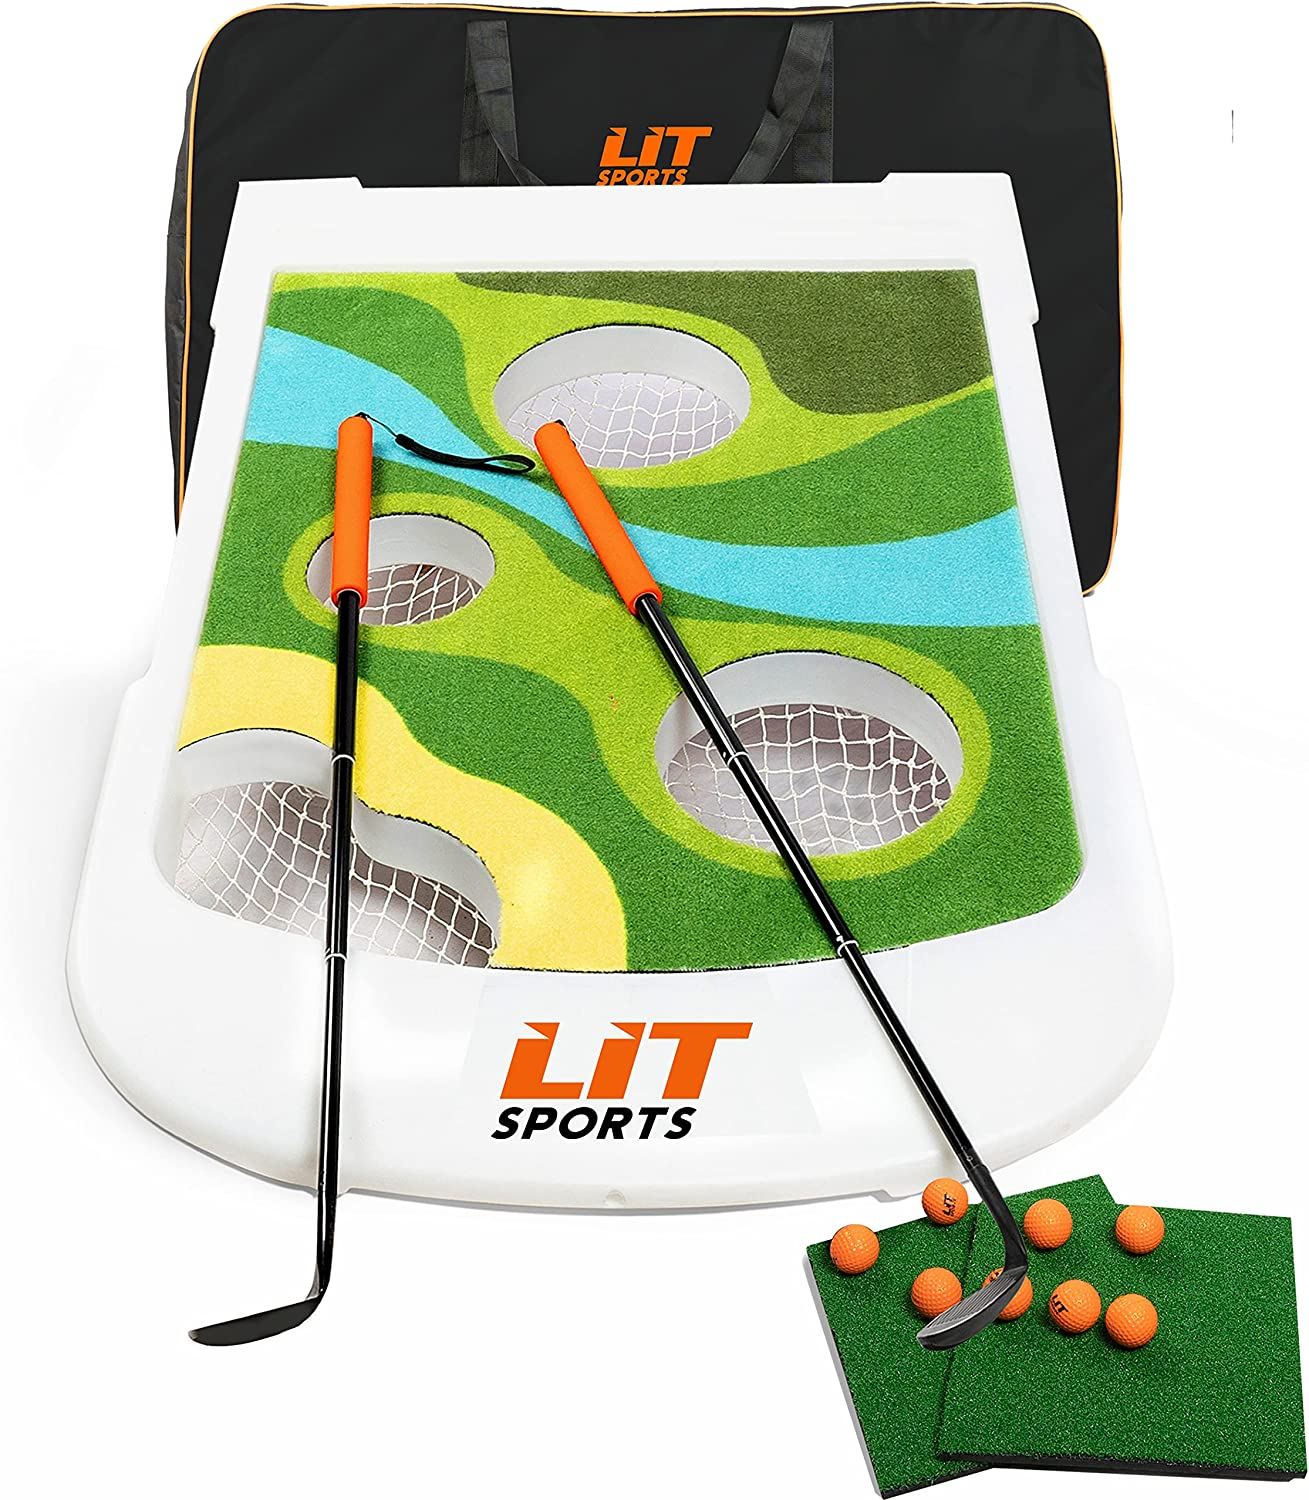 LITSPORTS Backyard Golf Chipping Game Set -Includes Clubs, Target Board, Hitting Mats, Balls & Carry Bag. Cornhole Play with Friends & Kids at Home, Indoor & Outdoor. Great for chip shot practice too!